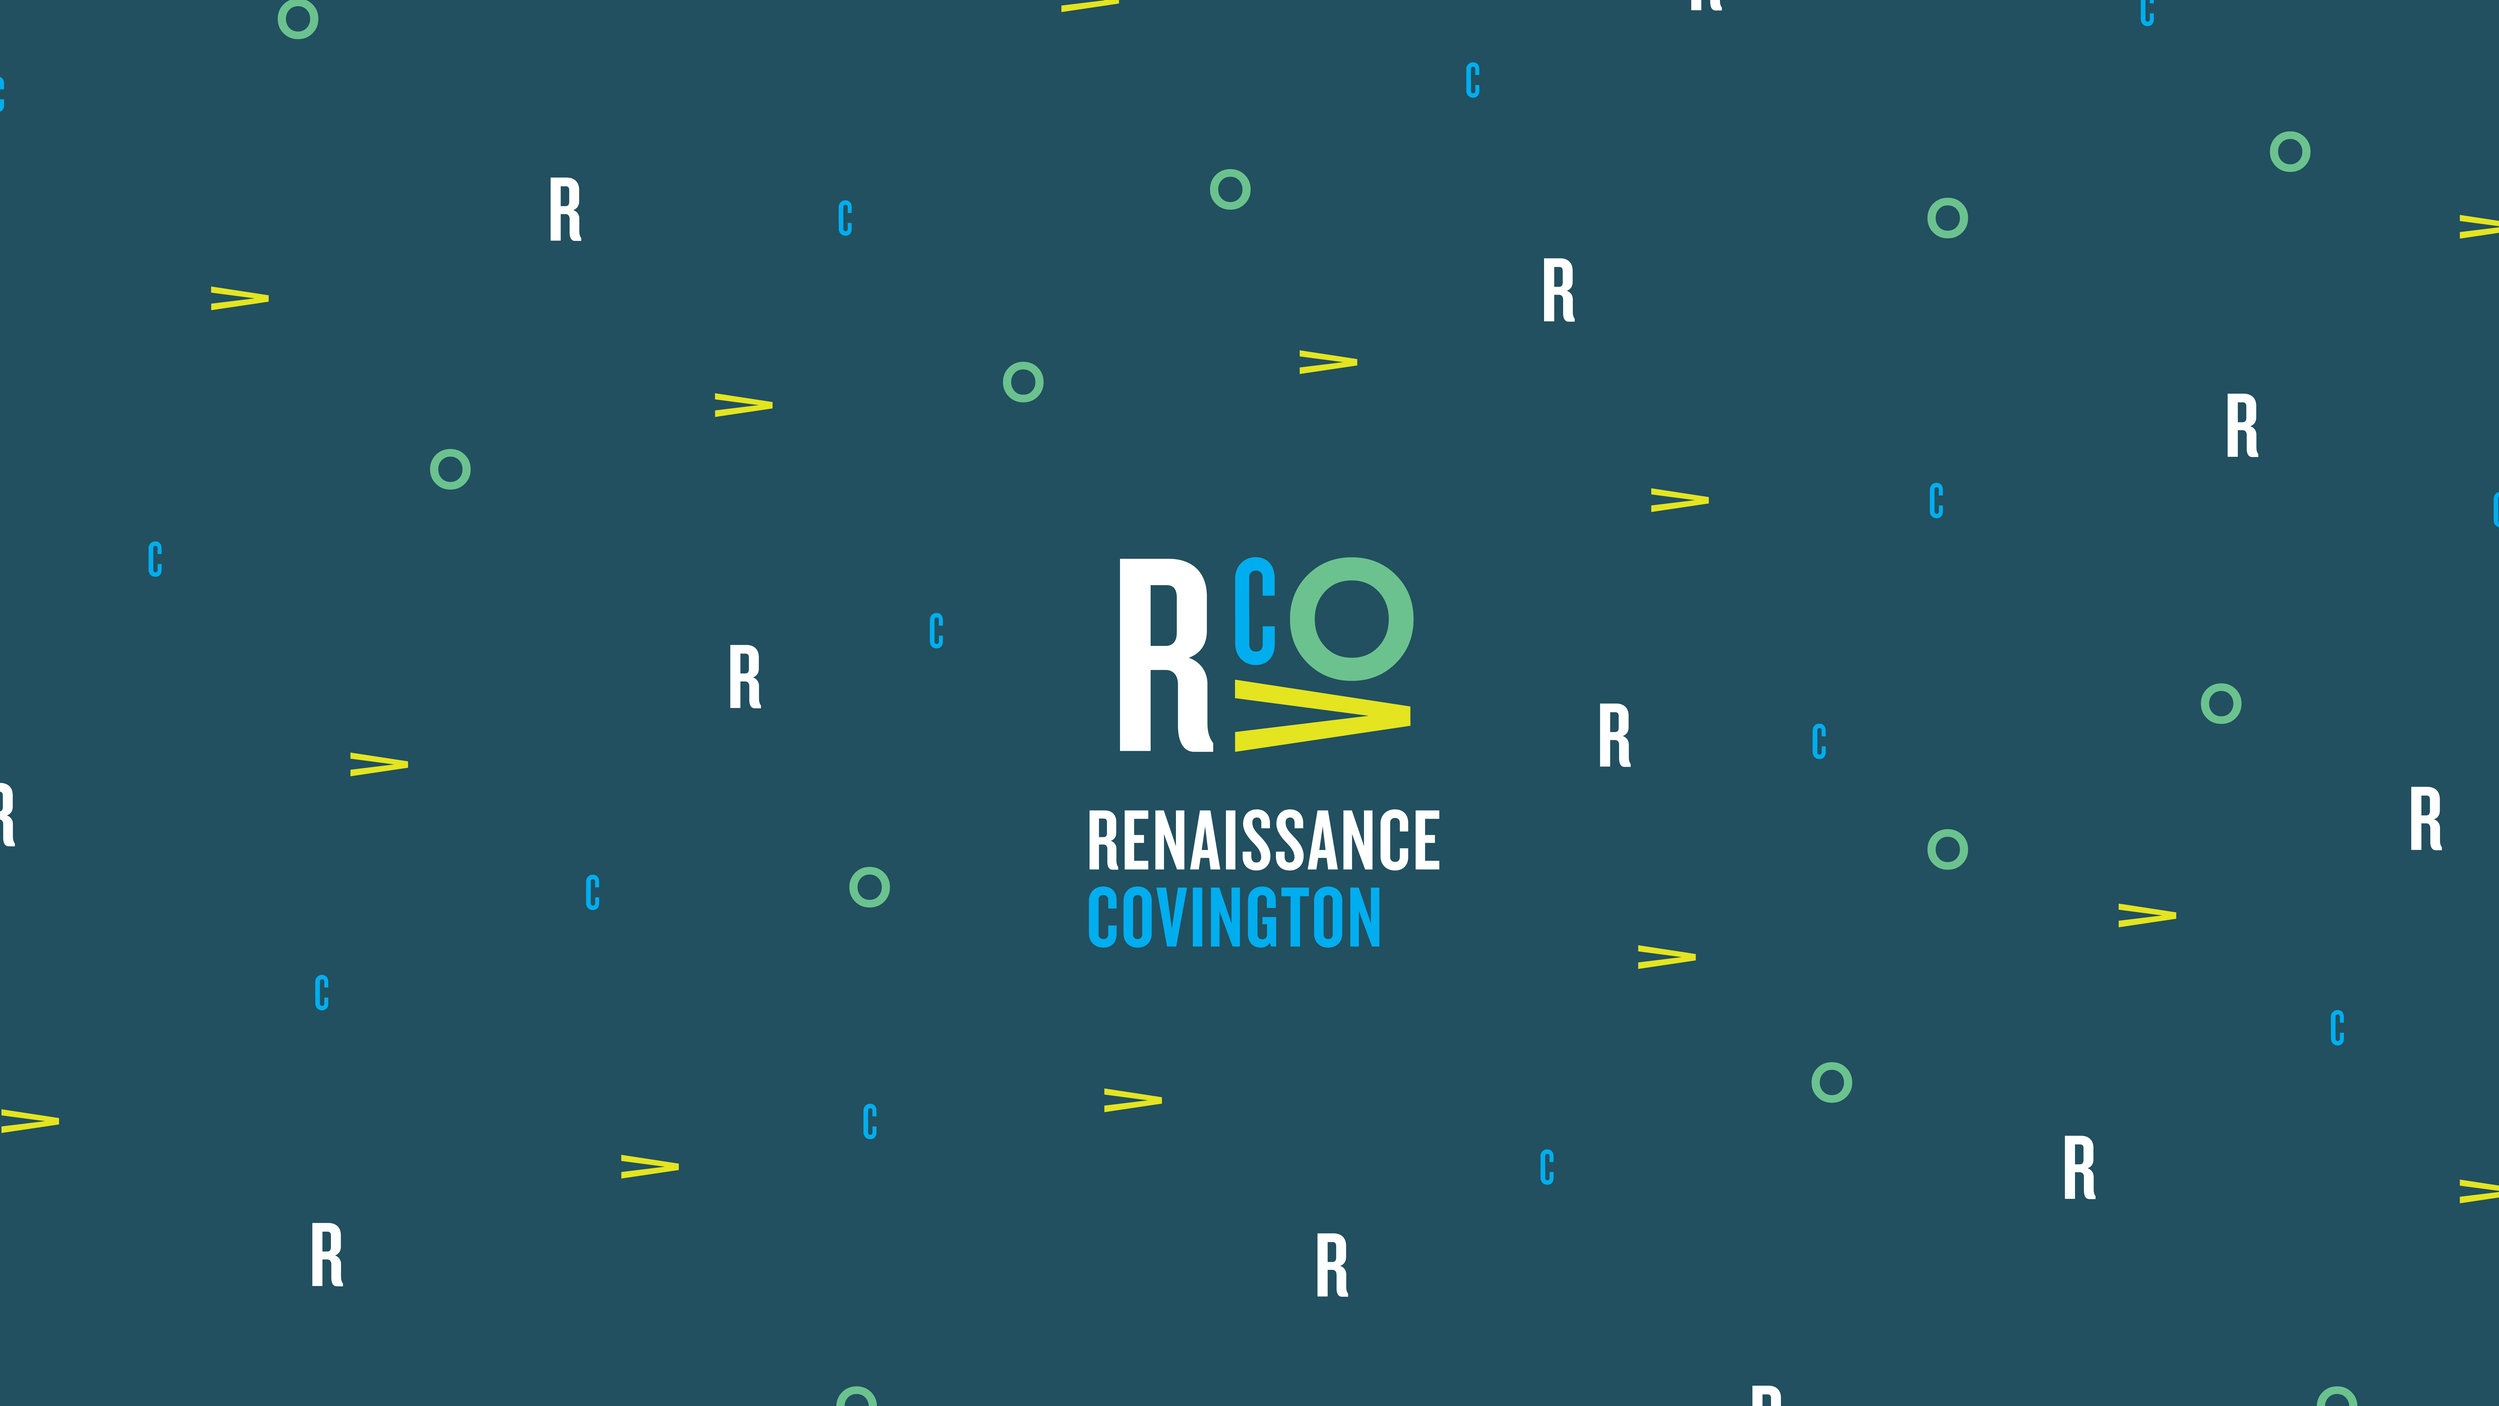 Renaissance Covington - Where Great ThingsCome Together